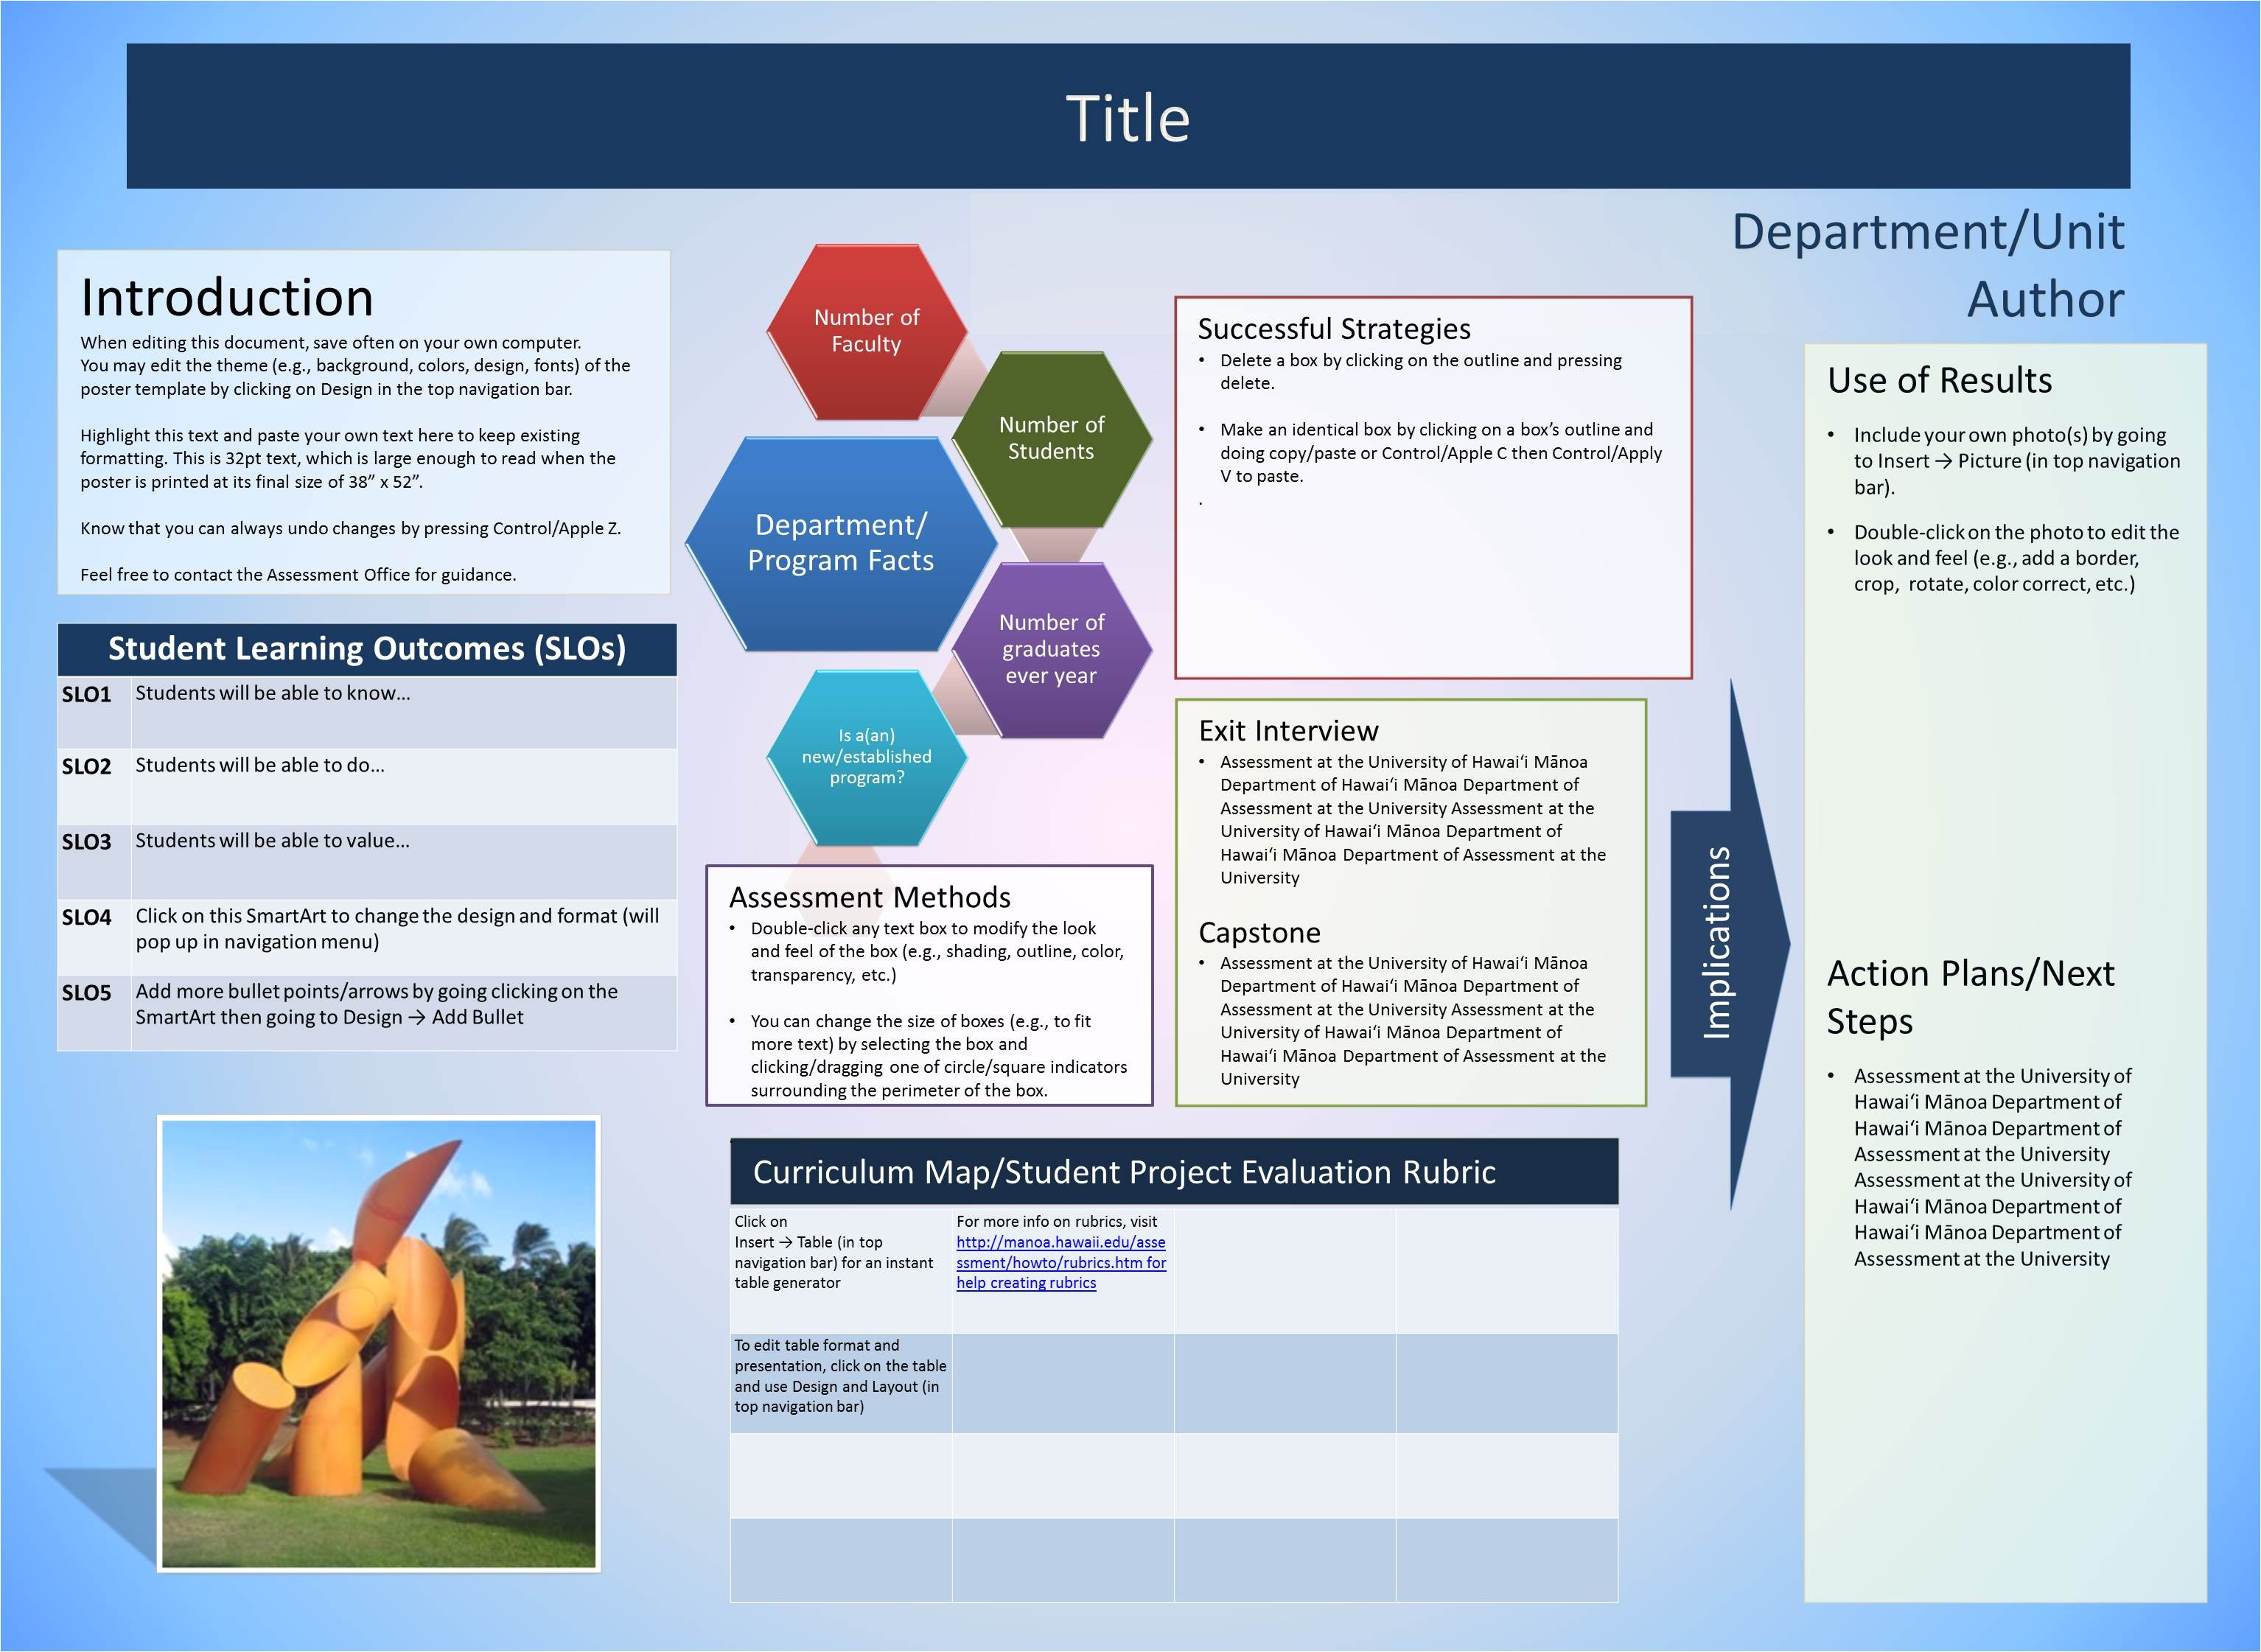 Business Plan Poster Template University Of Hawaii at Manoa assessment Office